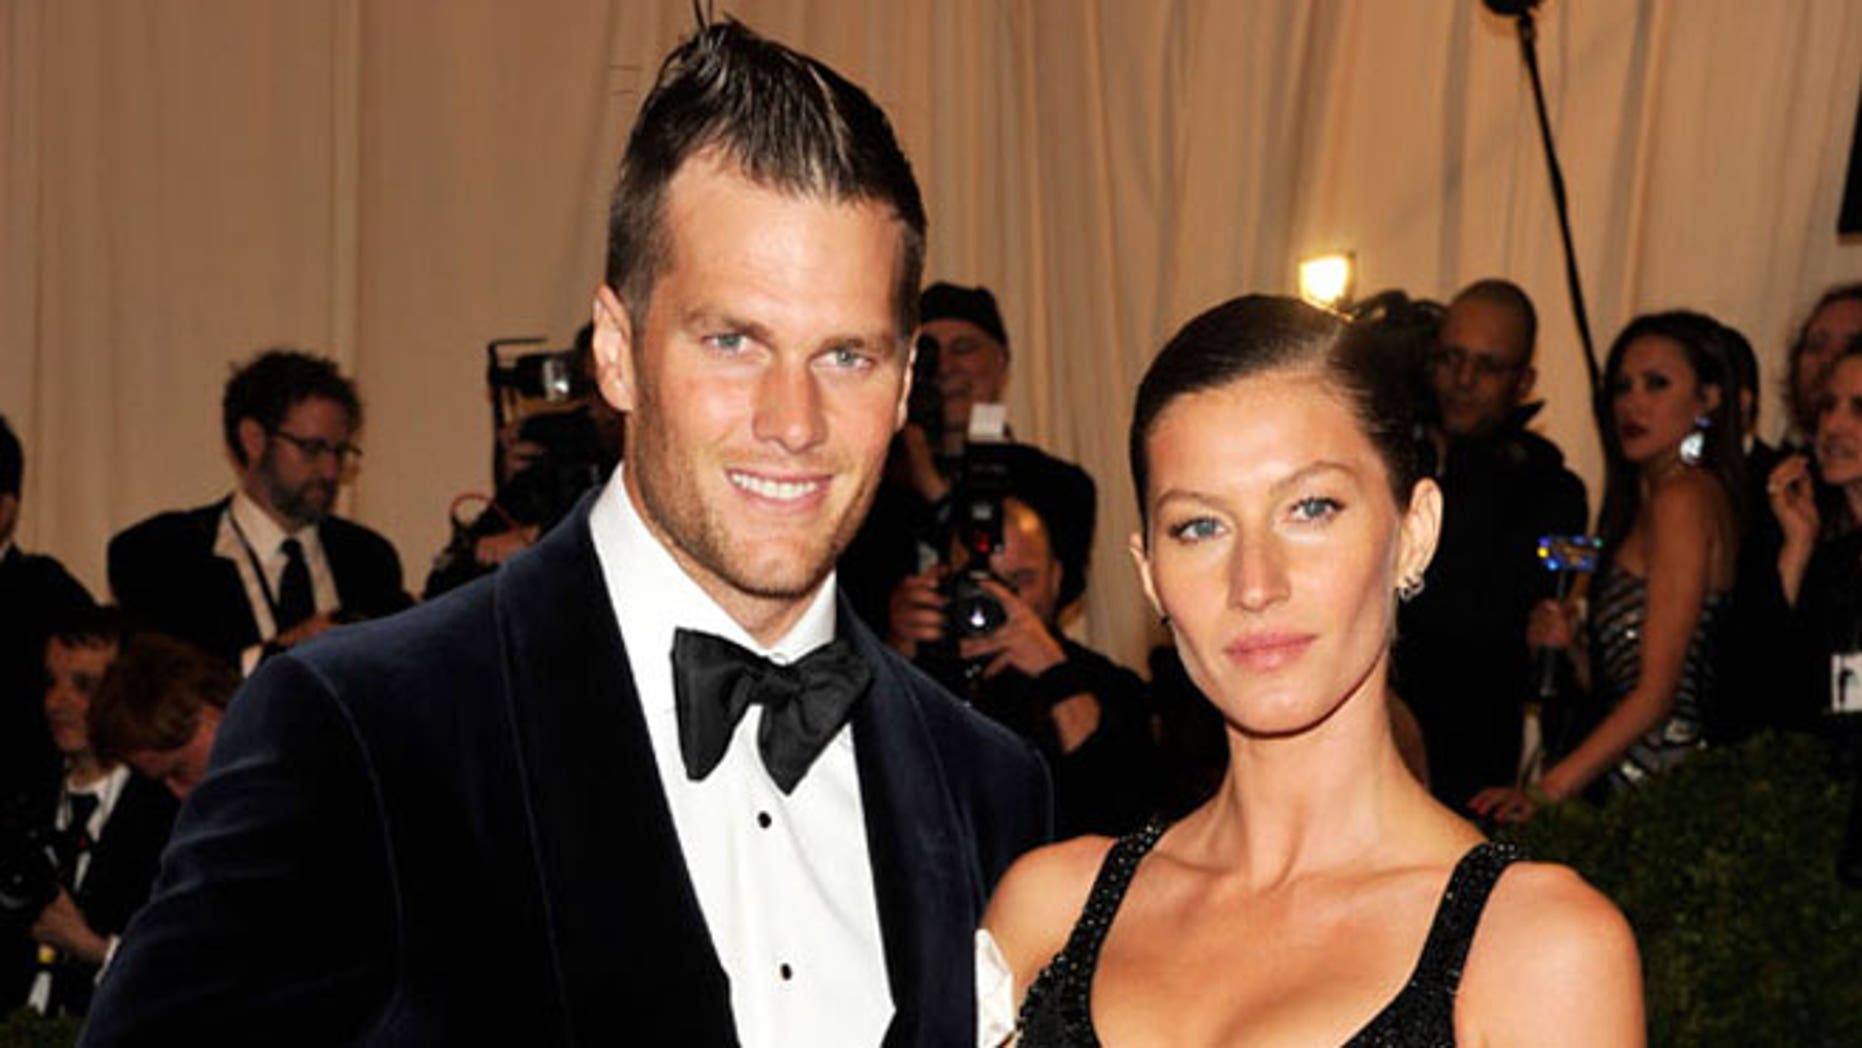 Tom Brady's hair looked a little ... different Monday.